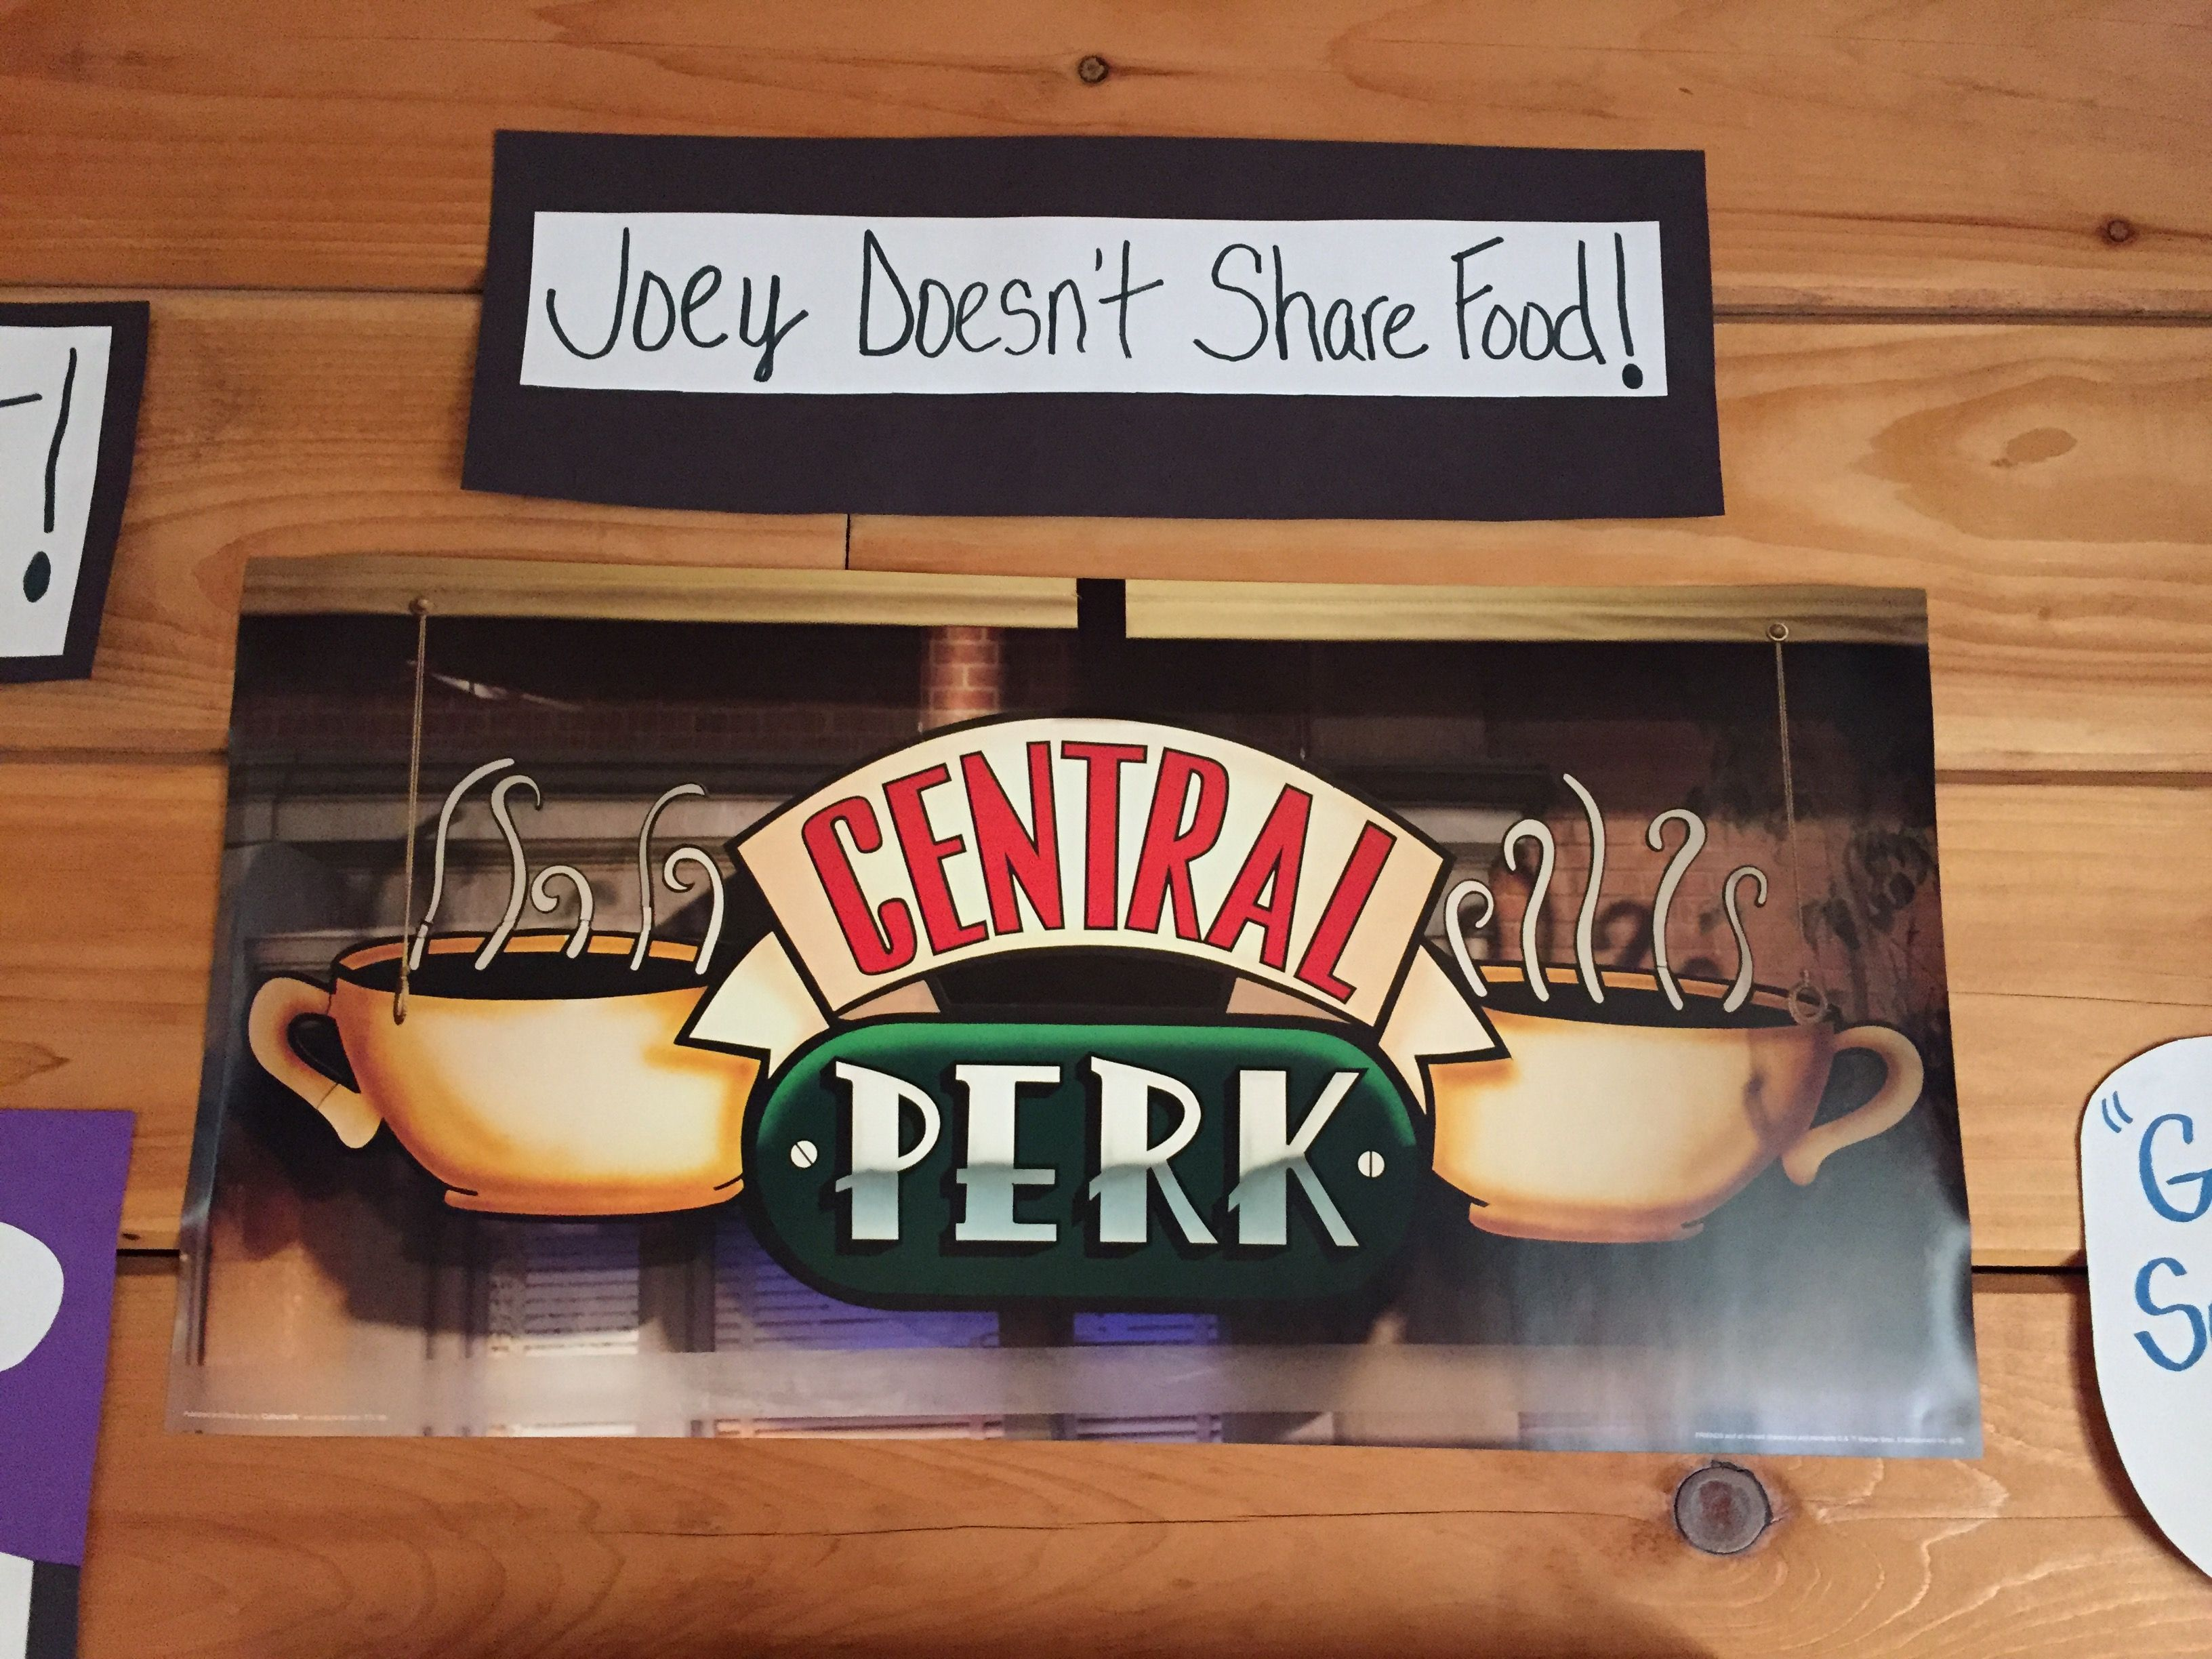 Central Perk logo poster Central perk logo, Friends tv